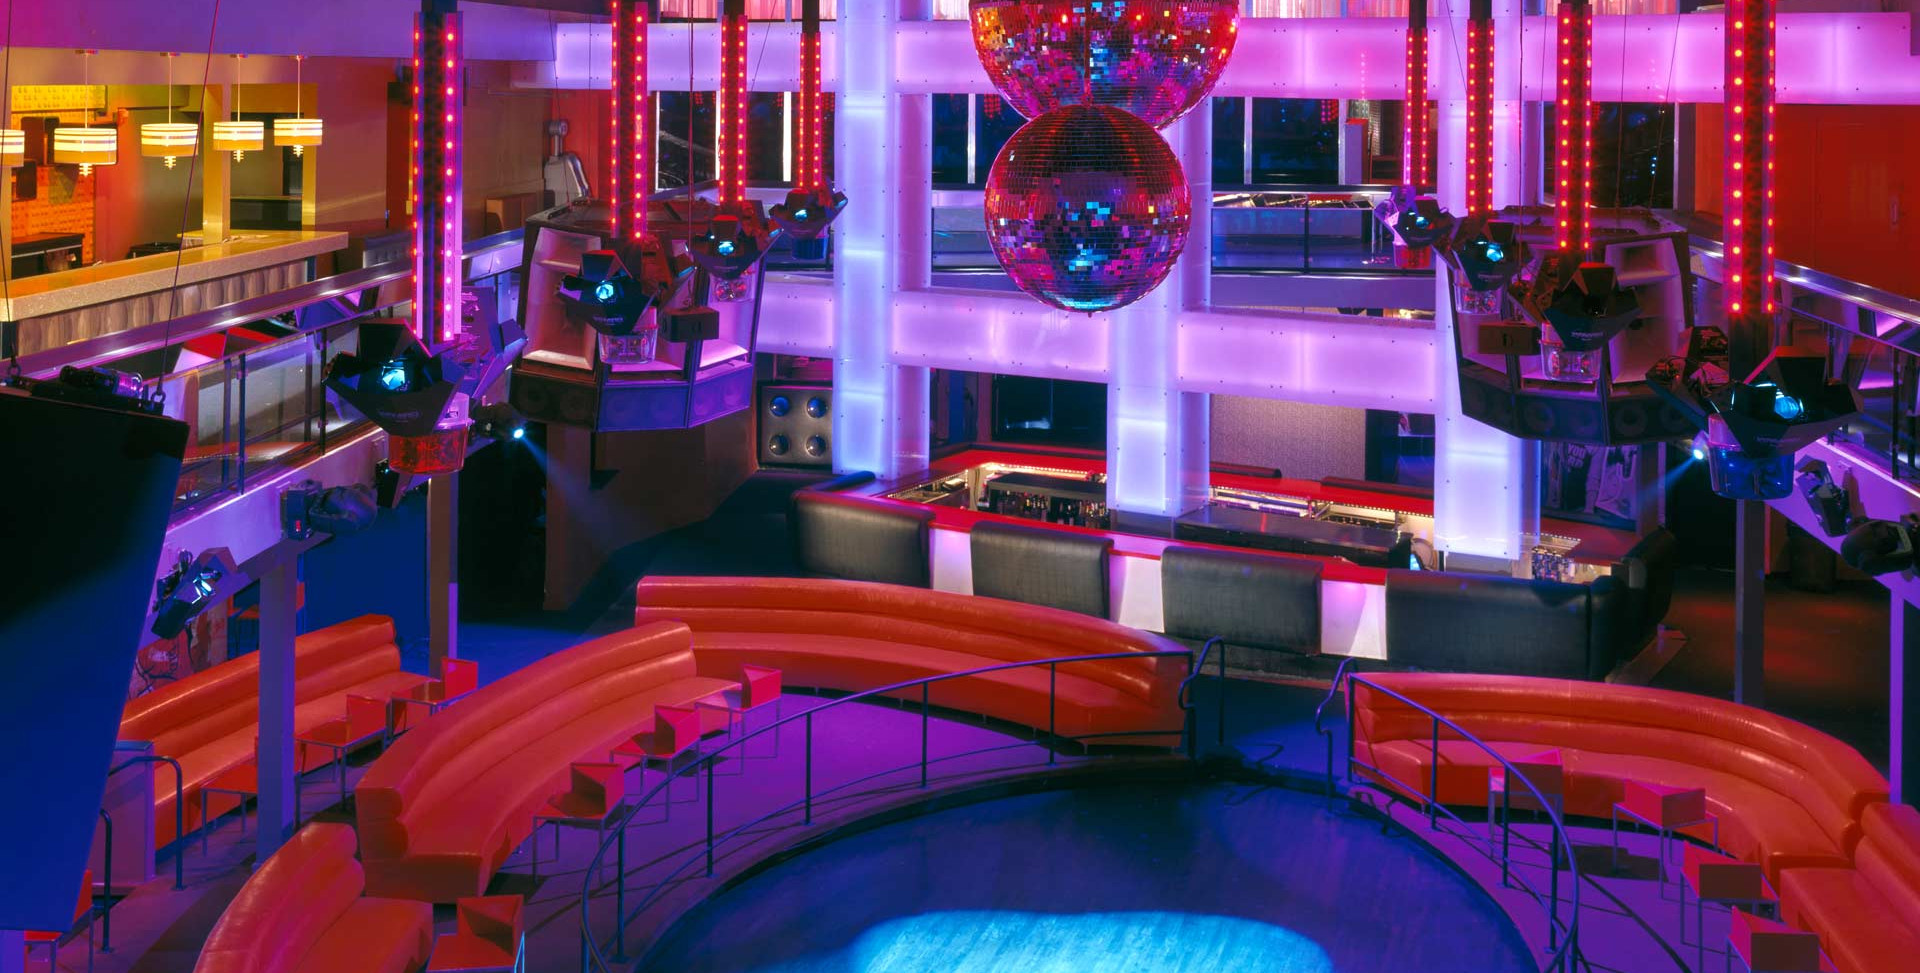 dynaled-club-disco-lighting-examples-20.